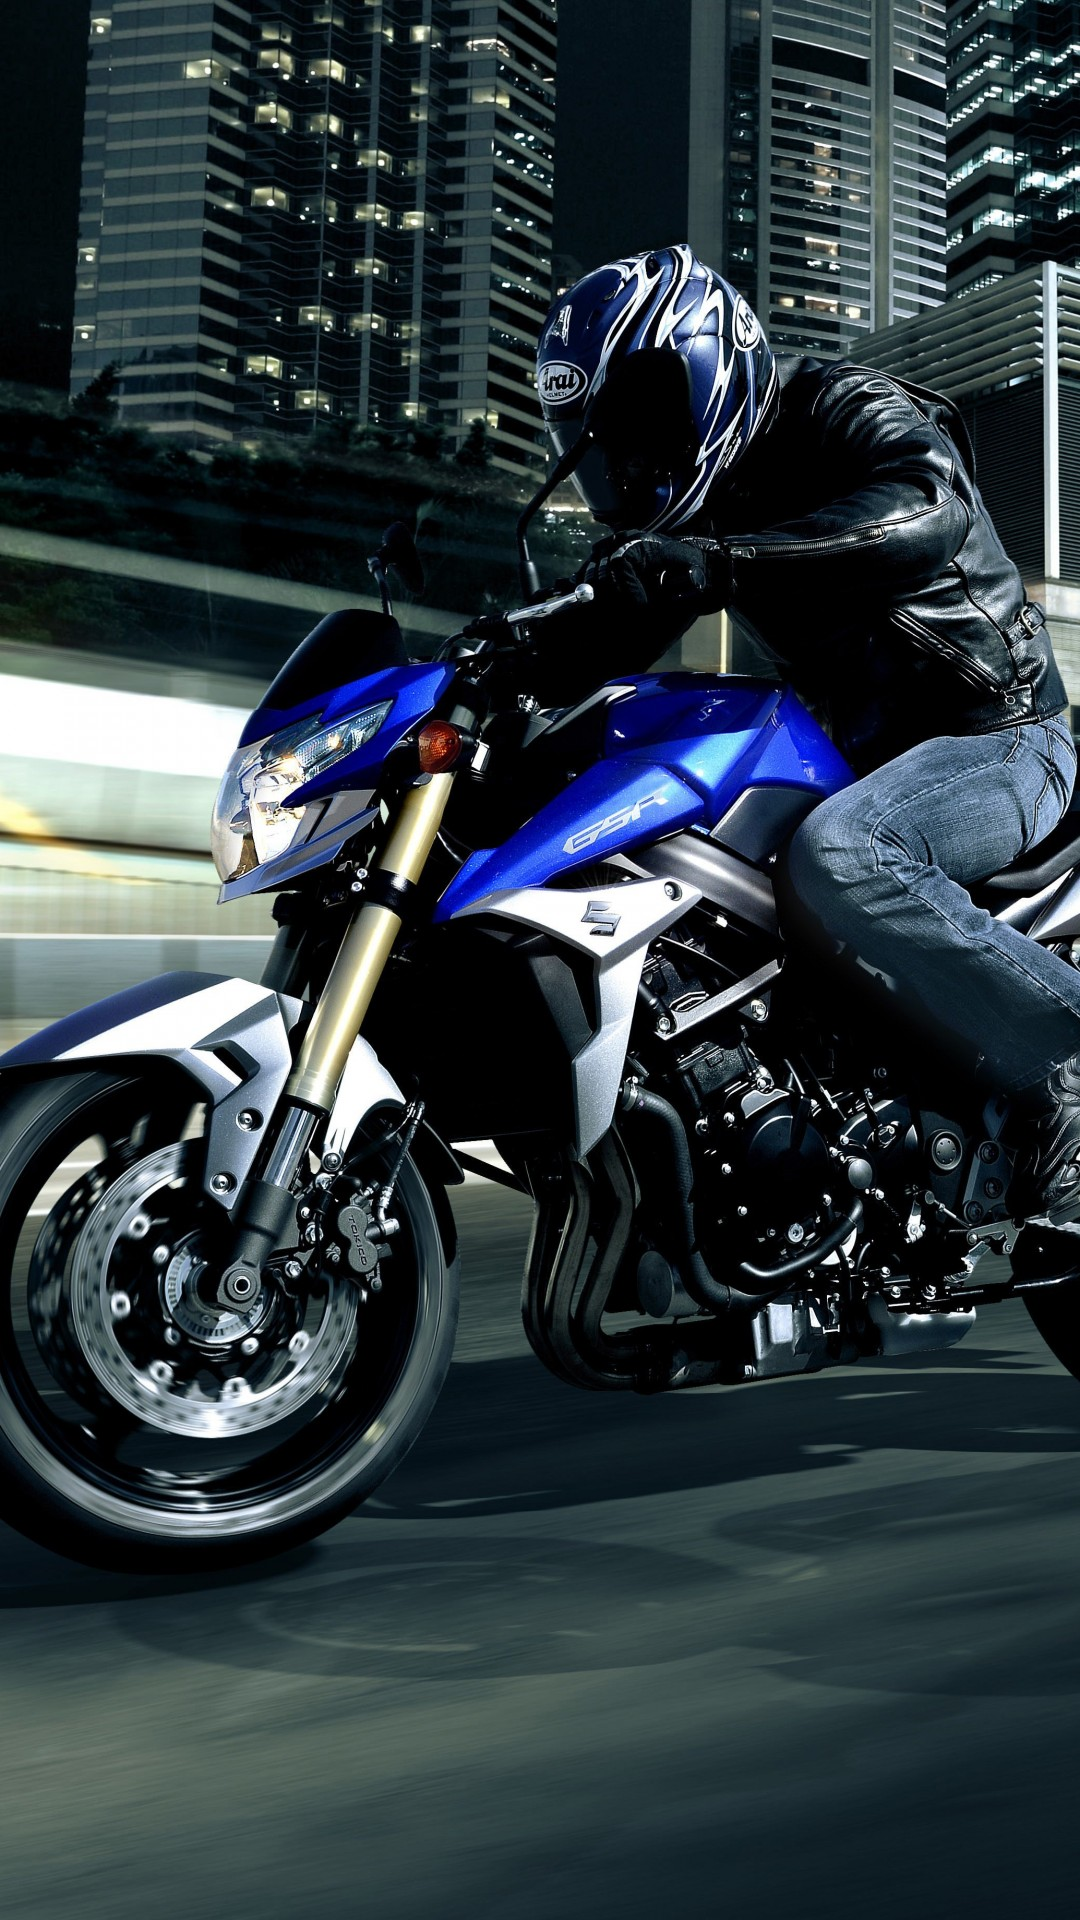 Suzuki GSX-R750 Wallpaper for SAMSUNG Galaxy Note 3